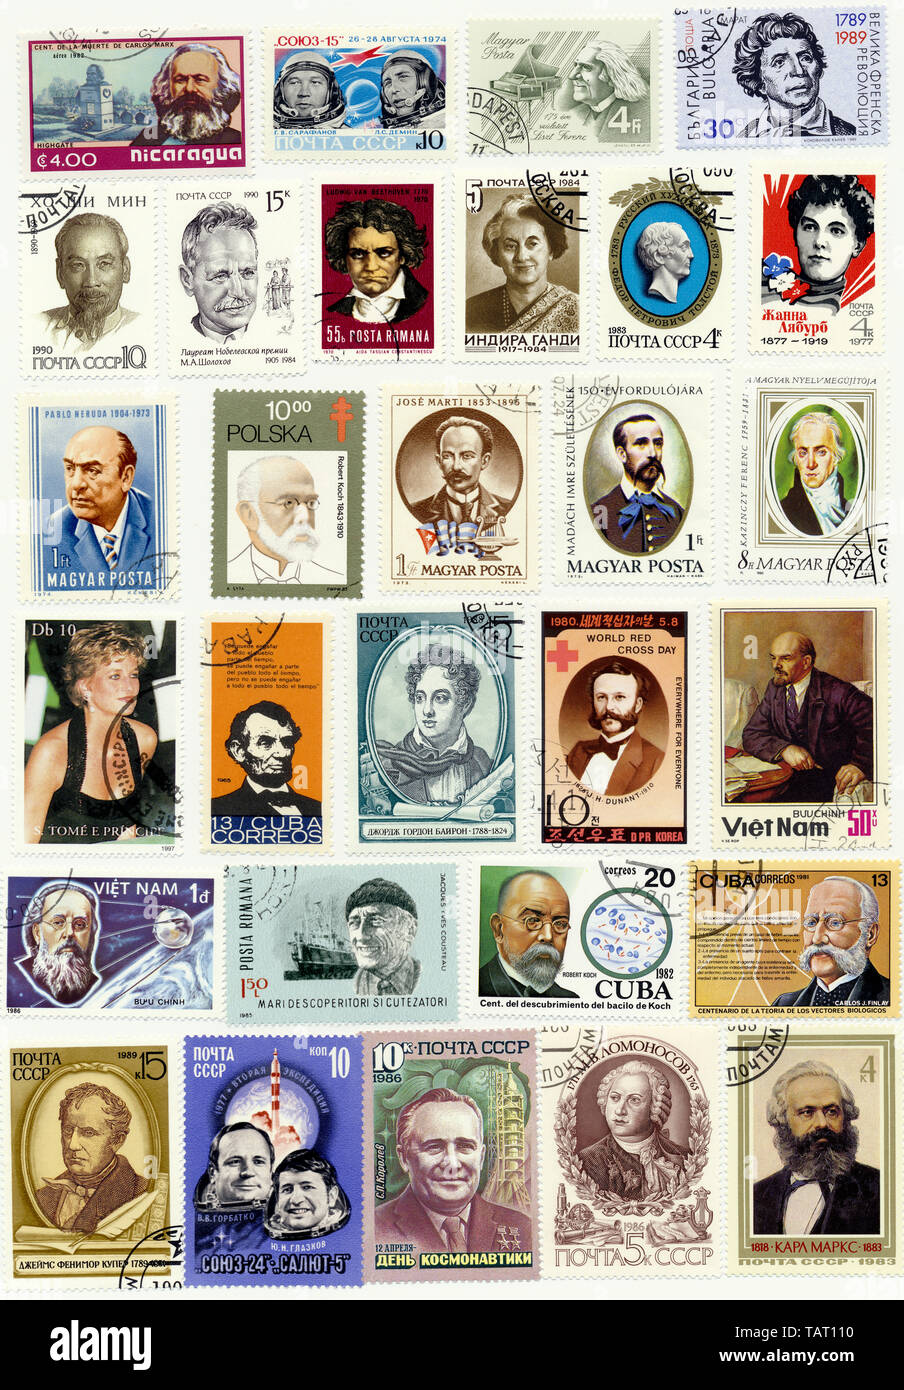 Historic postage stamps, international personalities, Historische Briefmarken, internationale Persönlichkeiten - Stock Image